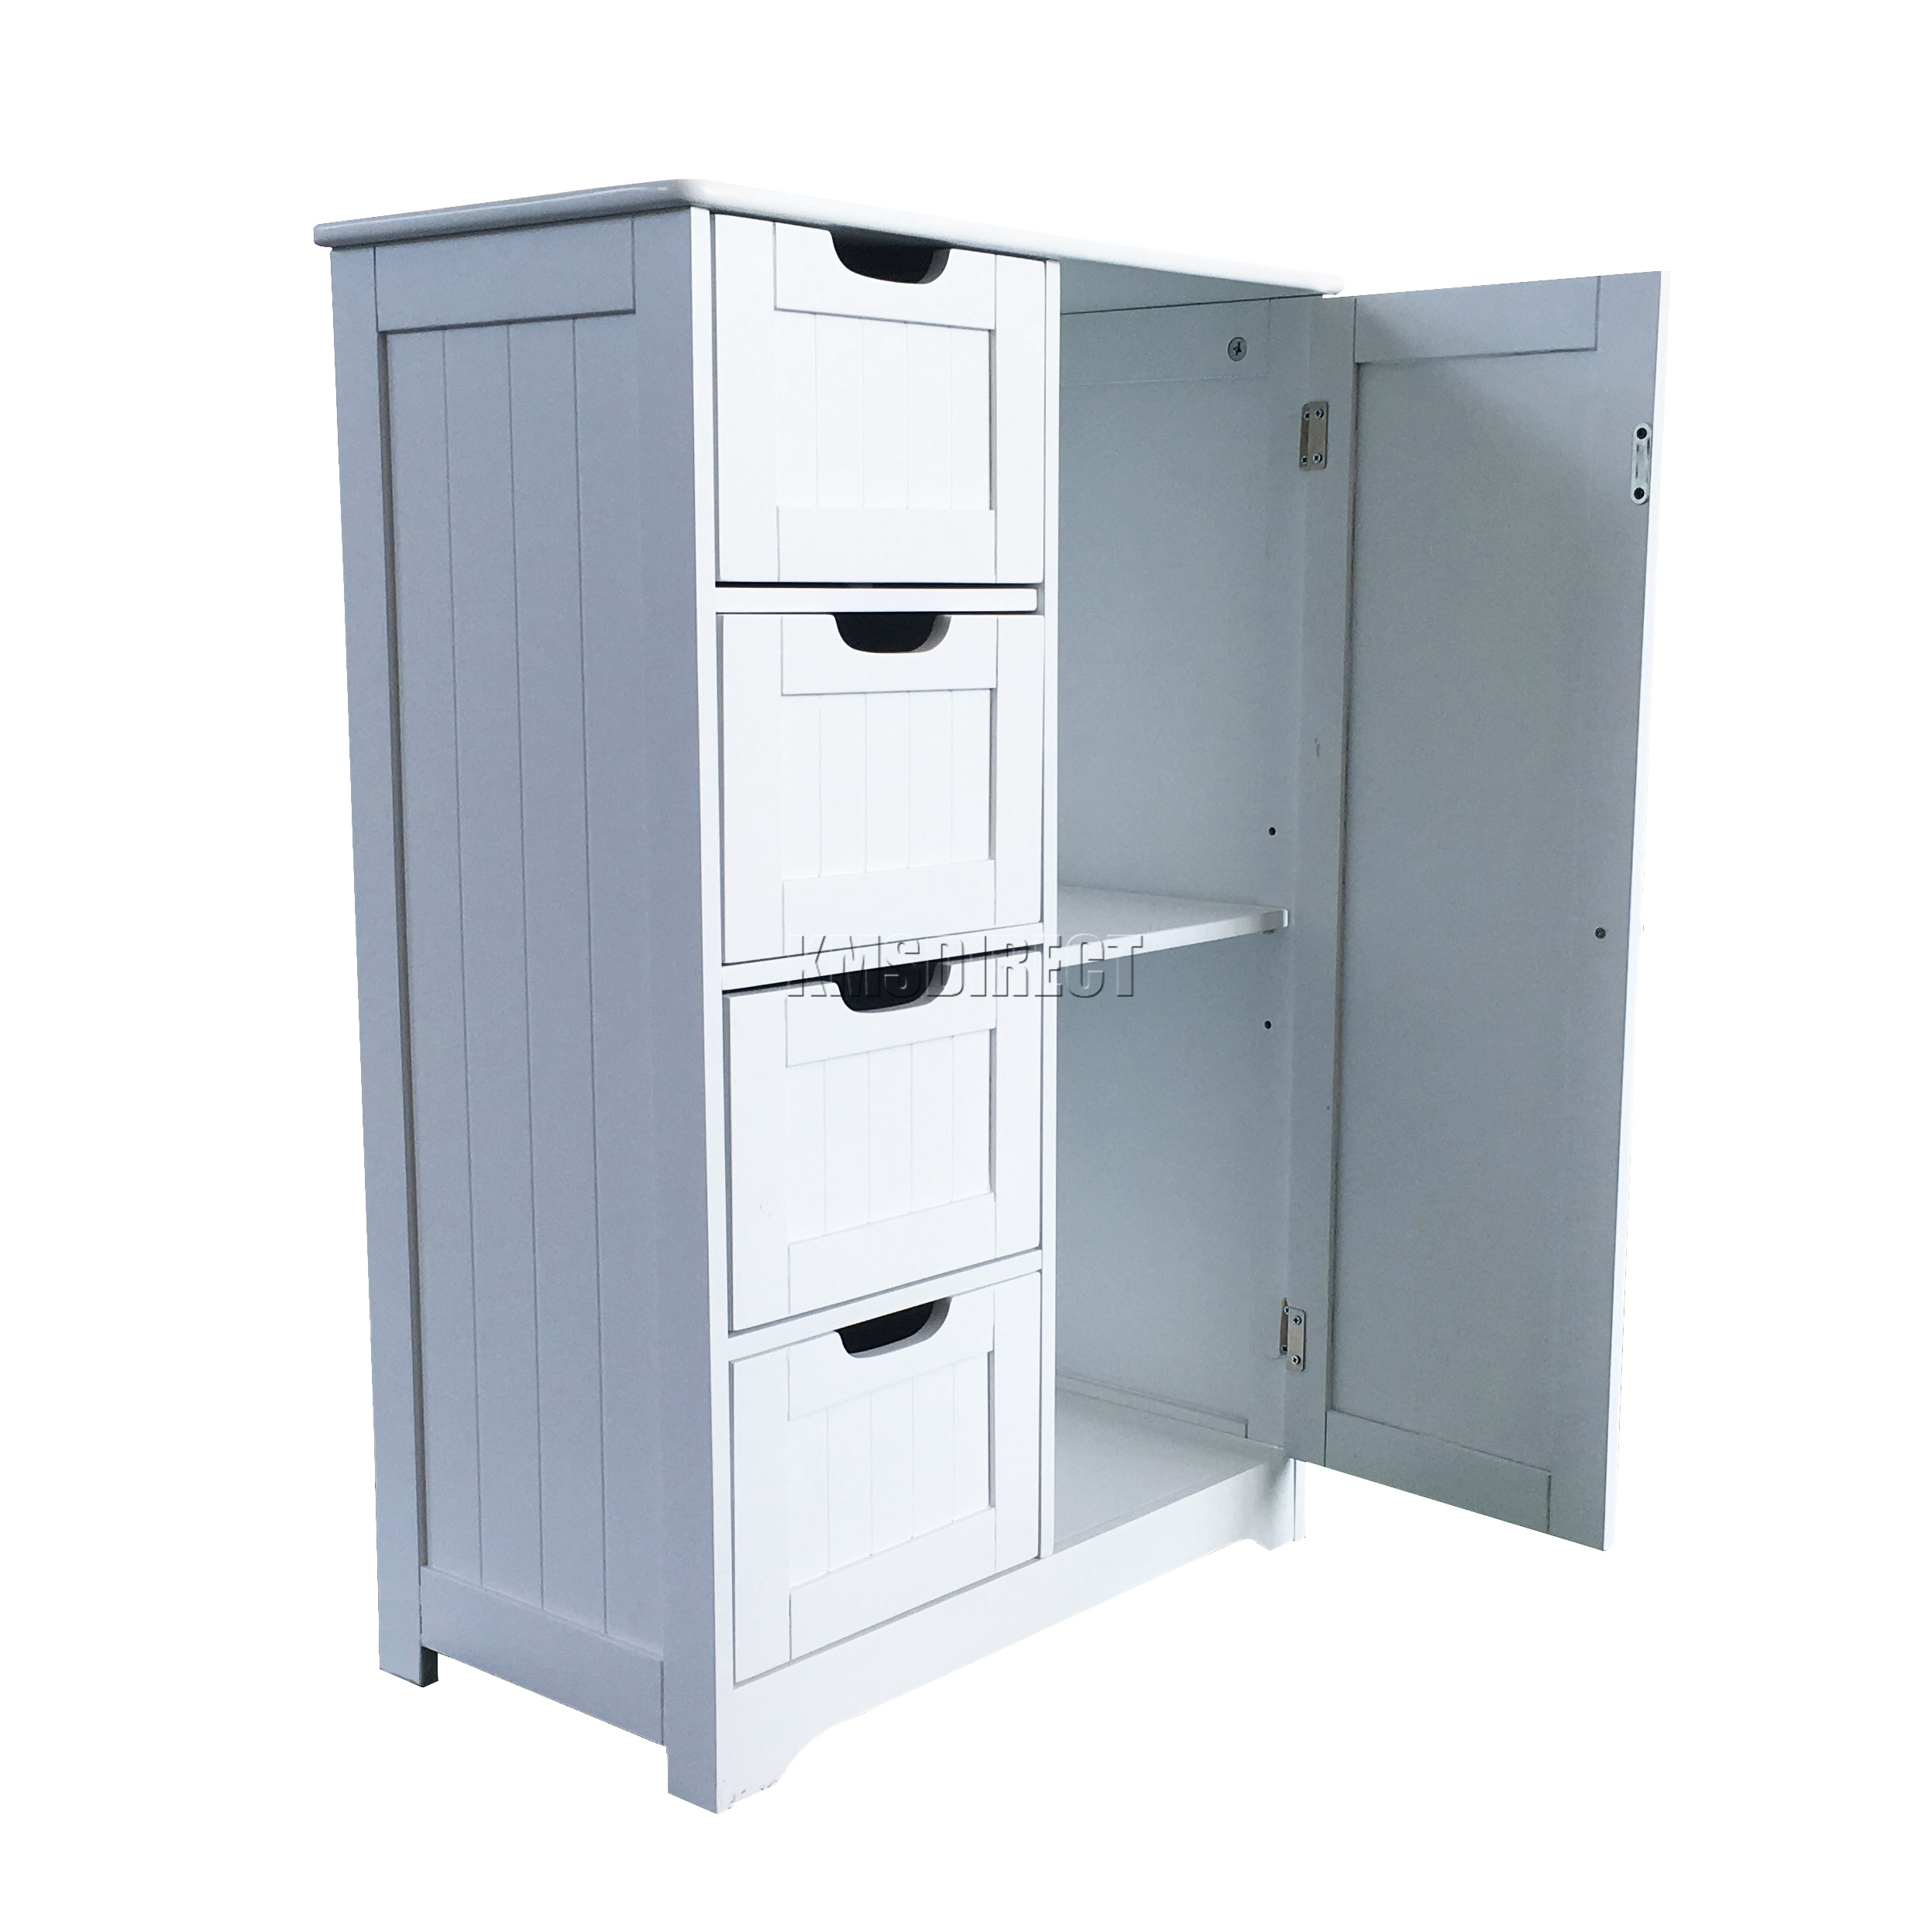 Foxhunter white wooden 4 drawer bathroom storage cupboard Bathroom storage cabinet with drawers